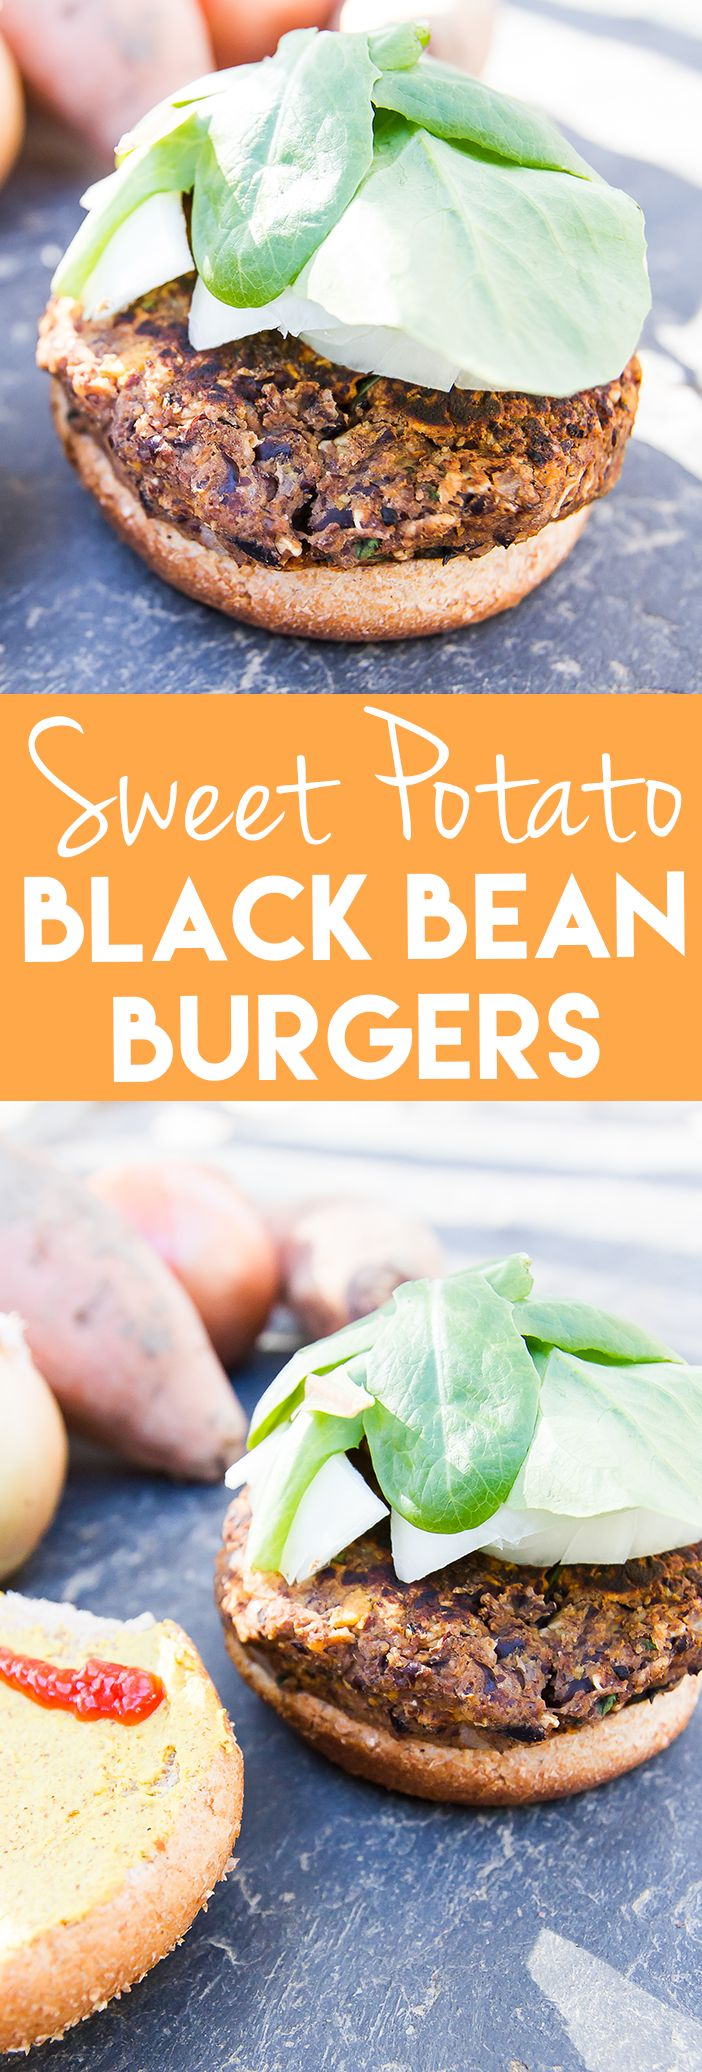 A tasty spin on regular black bean burgers. This version is made with sweet potatoes, oats and flax so they're gluten-free and vegan. They're loaded with flavor and hold together well!